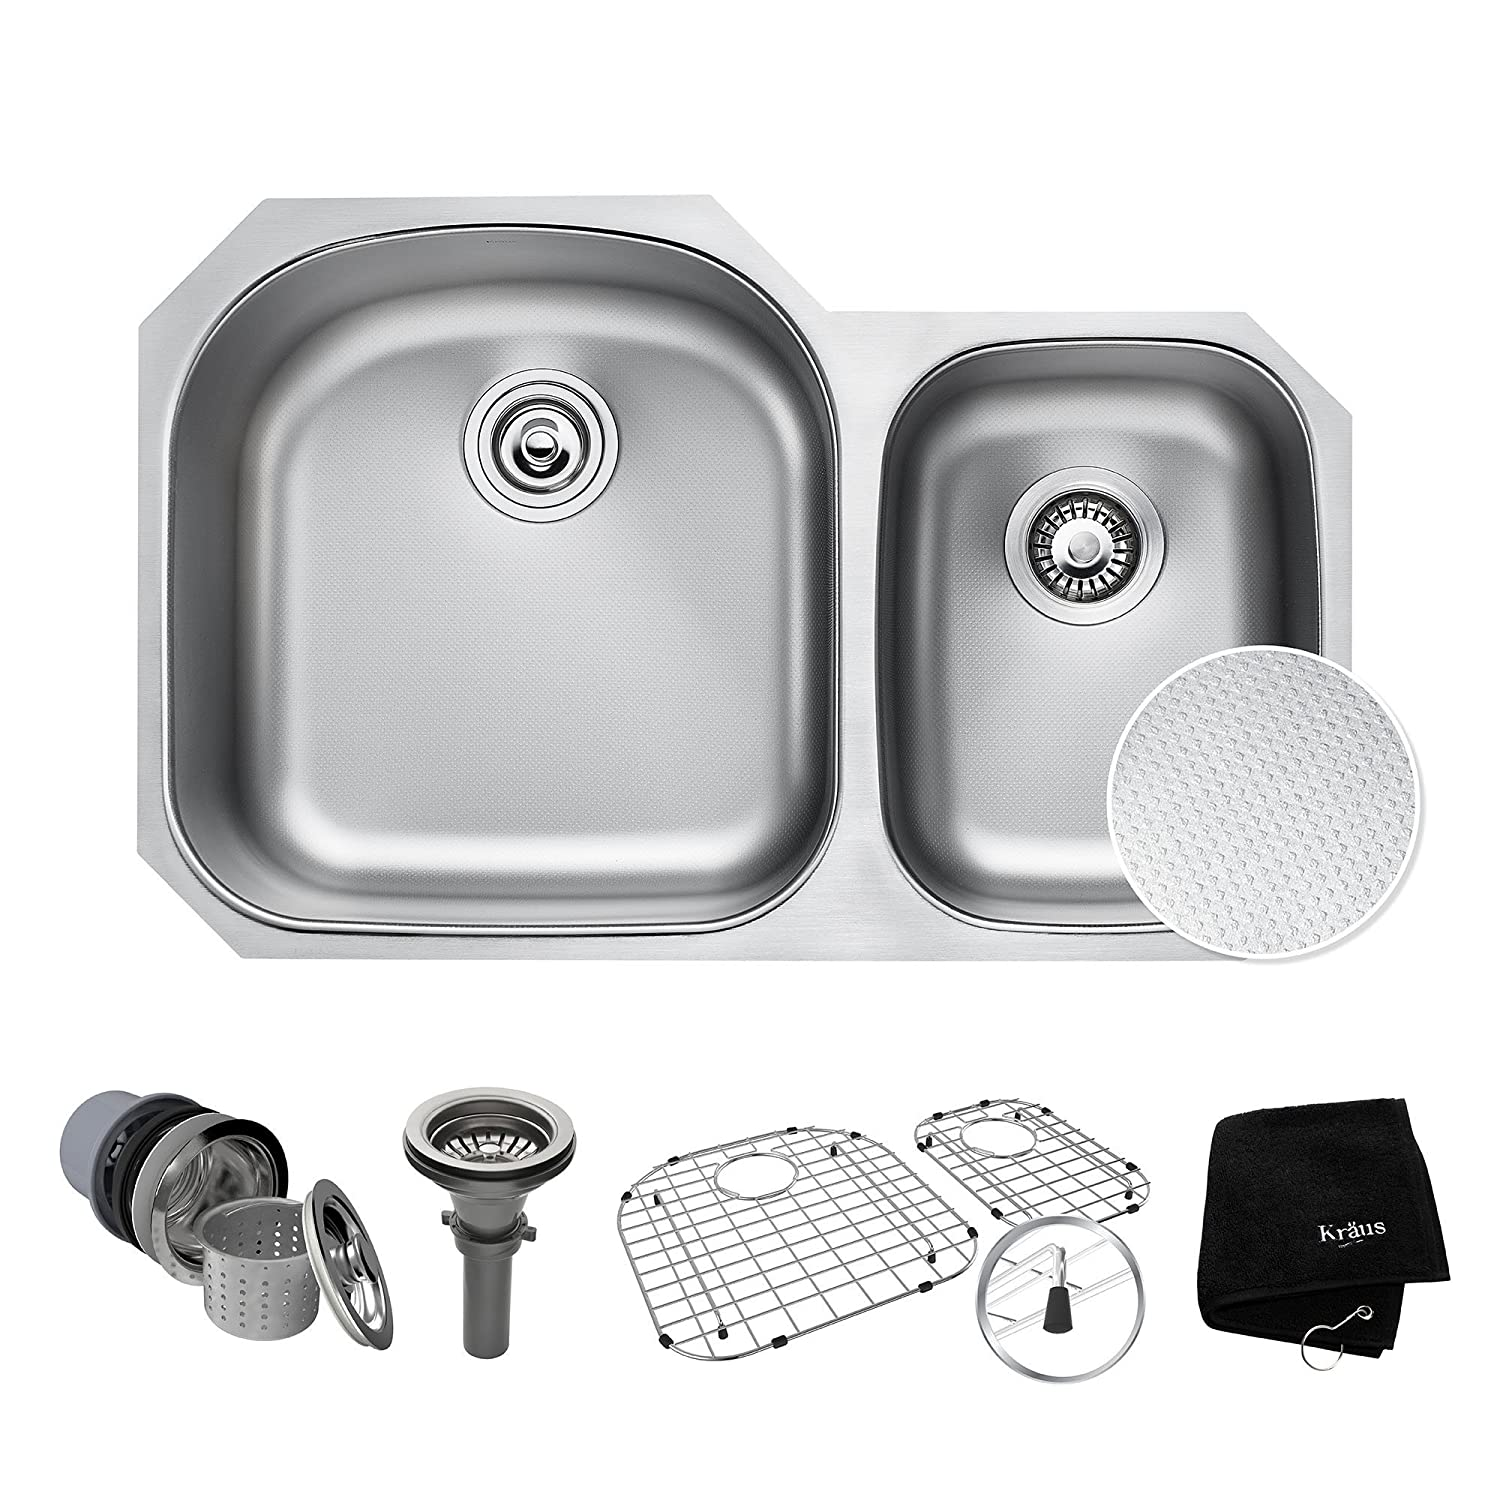 "KRAUS Outlast MicroShield Scratch-Resist Stainless Steel Undermount 60/40 Double Bowl Sink, 32"" 16 Gauge, Premier Series KBU23E"